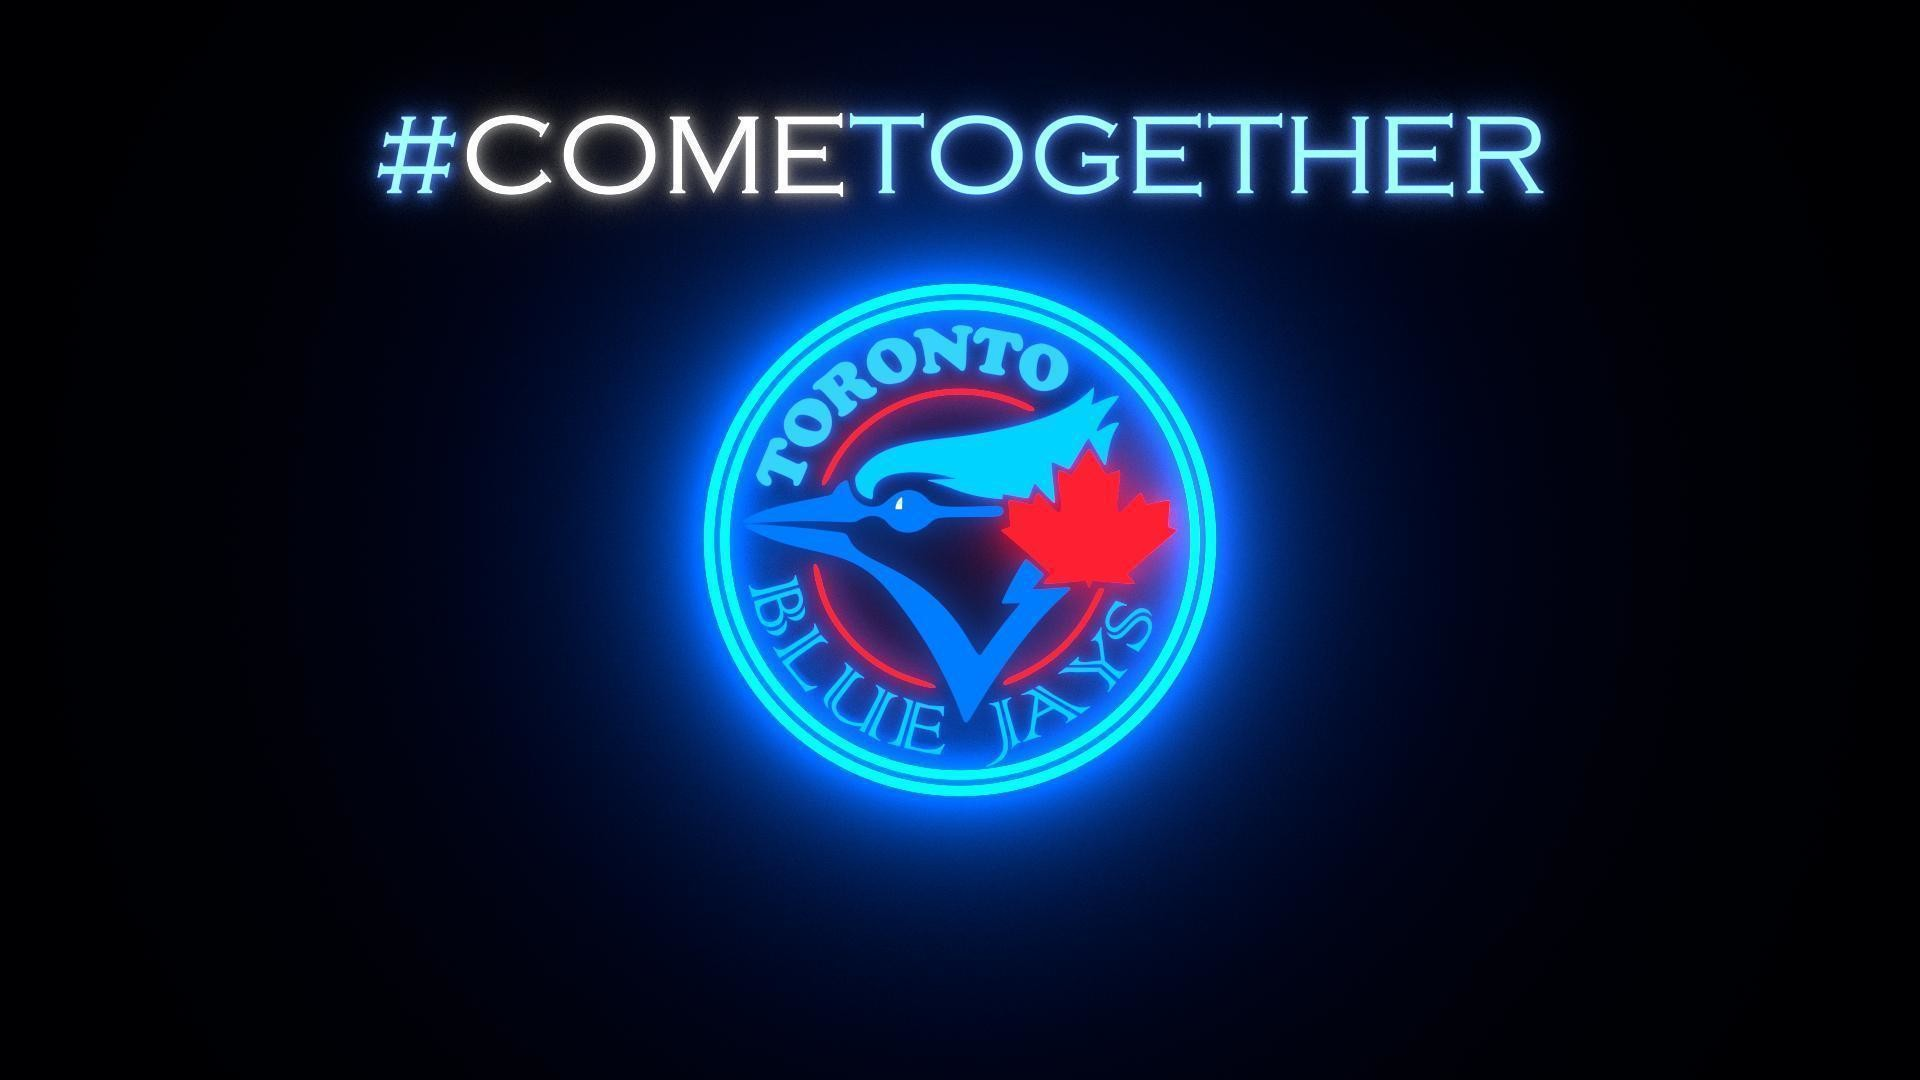 Toronto Blue Jays wallpaper HD background download Facebook Covers .